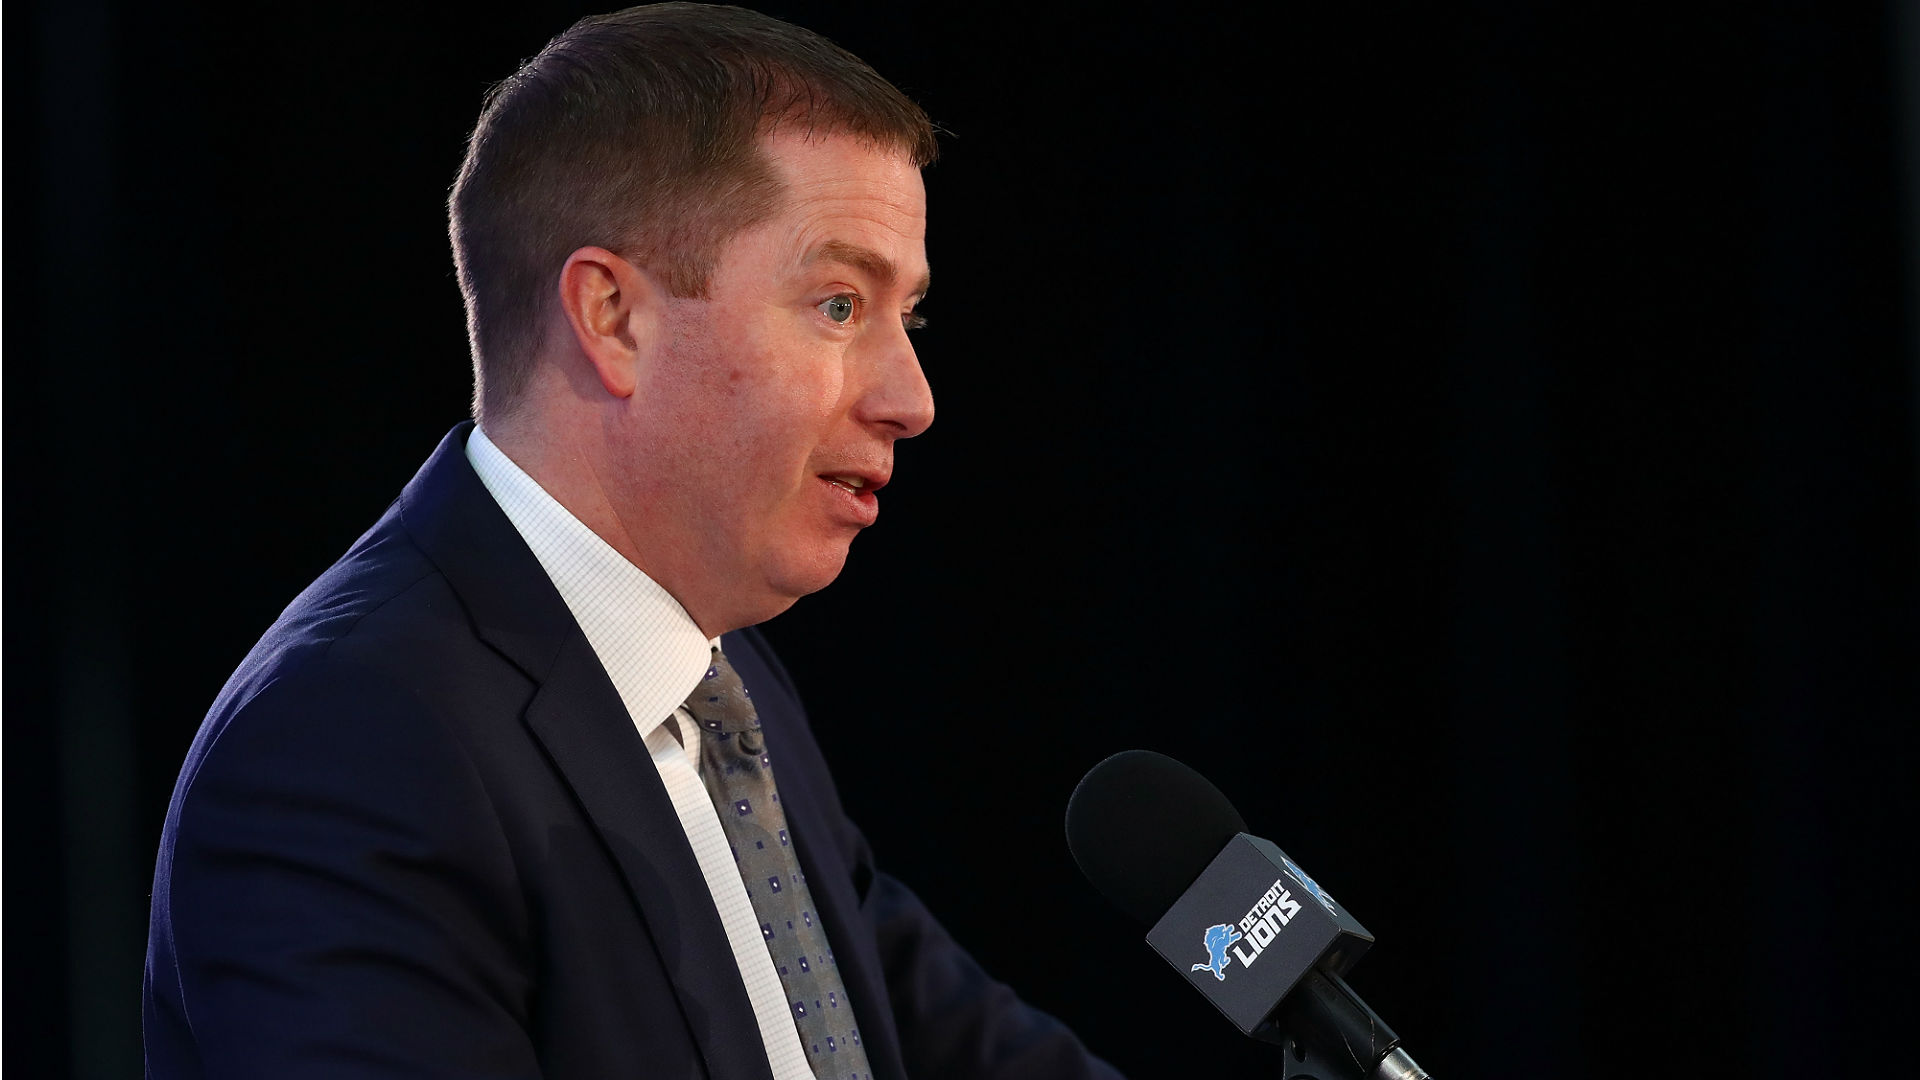 NFL Draft 2019: Lions haven't ruled out selecting quarterback with No. 8 pick, GM says